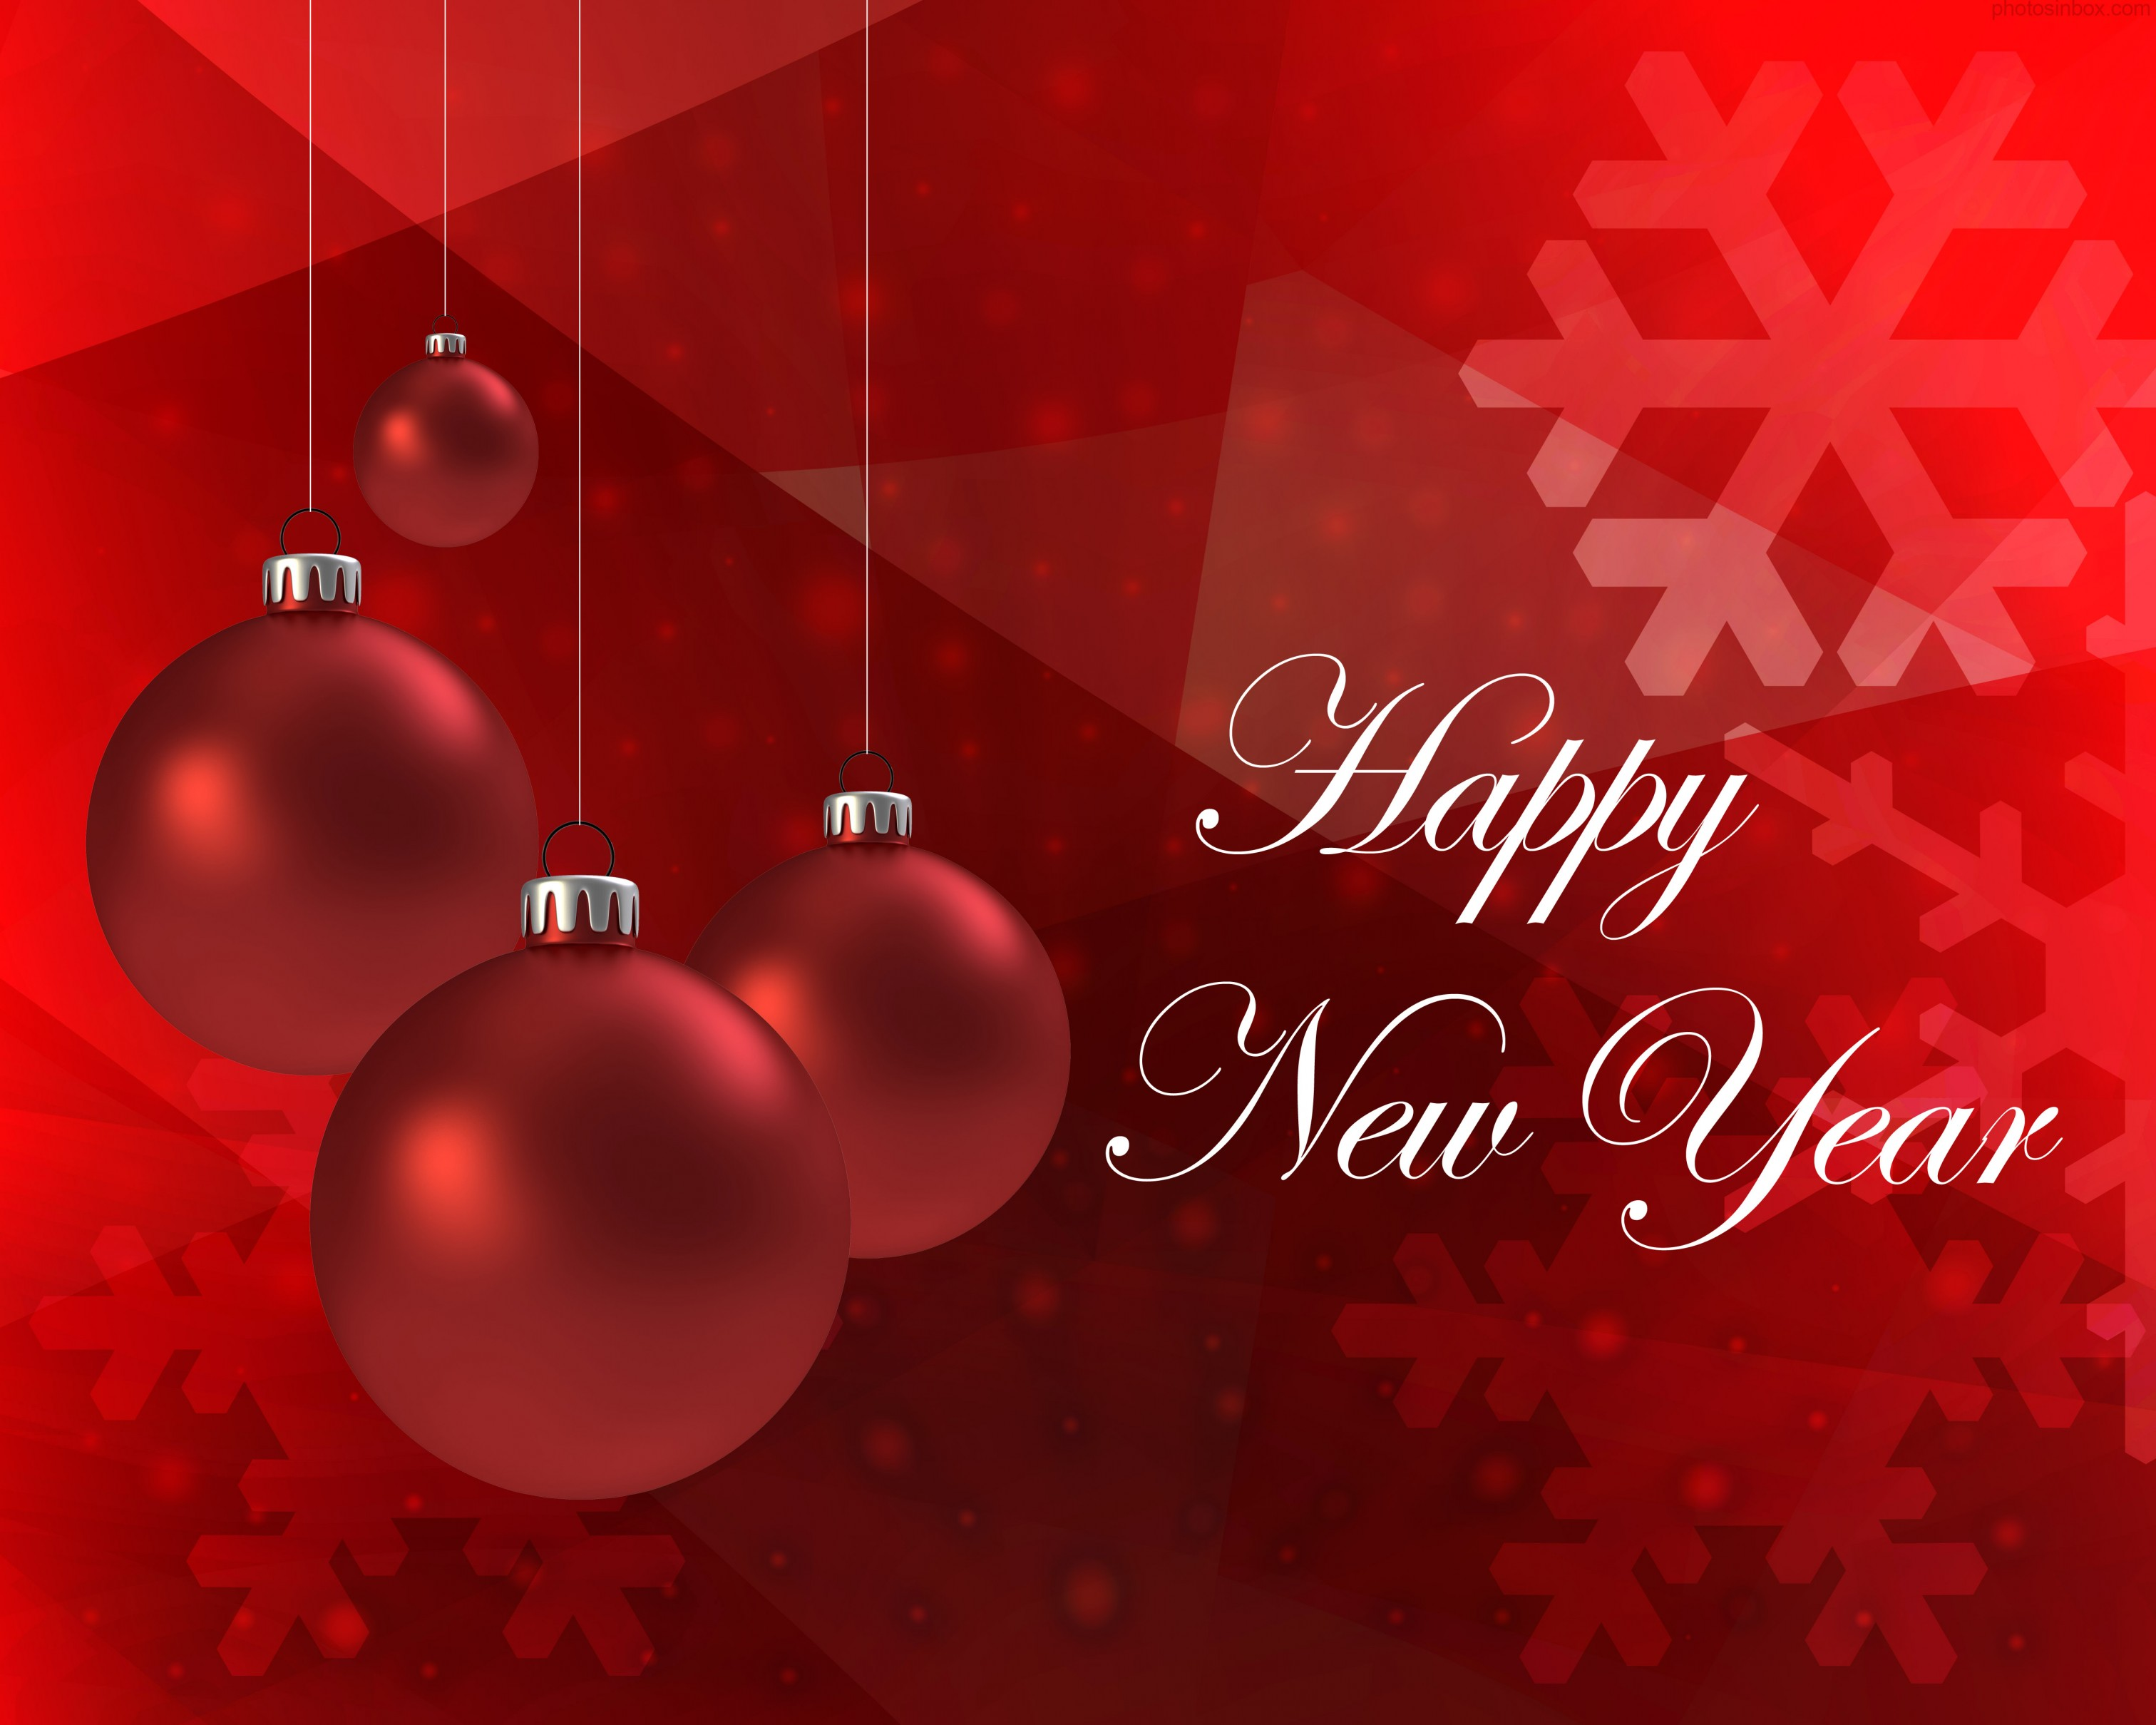 Happy New Year Greeting Cards - High Definition Wallpaper